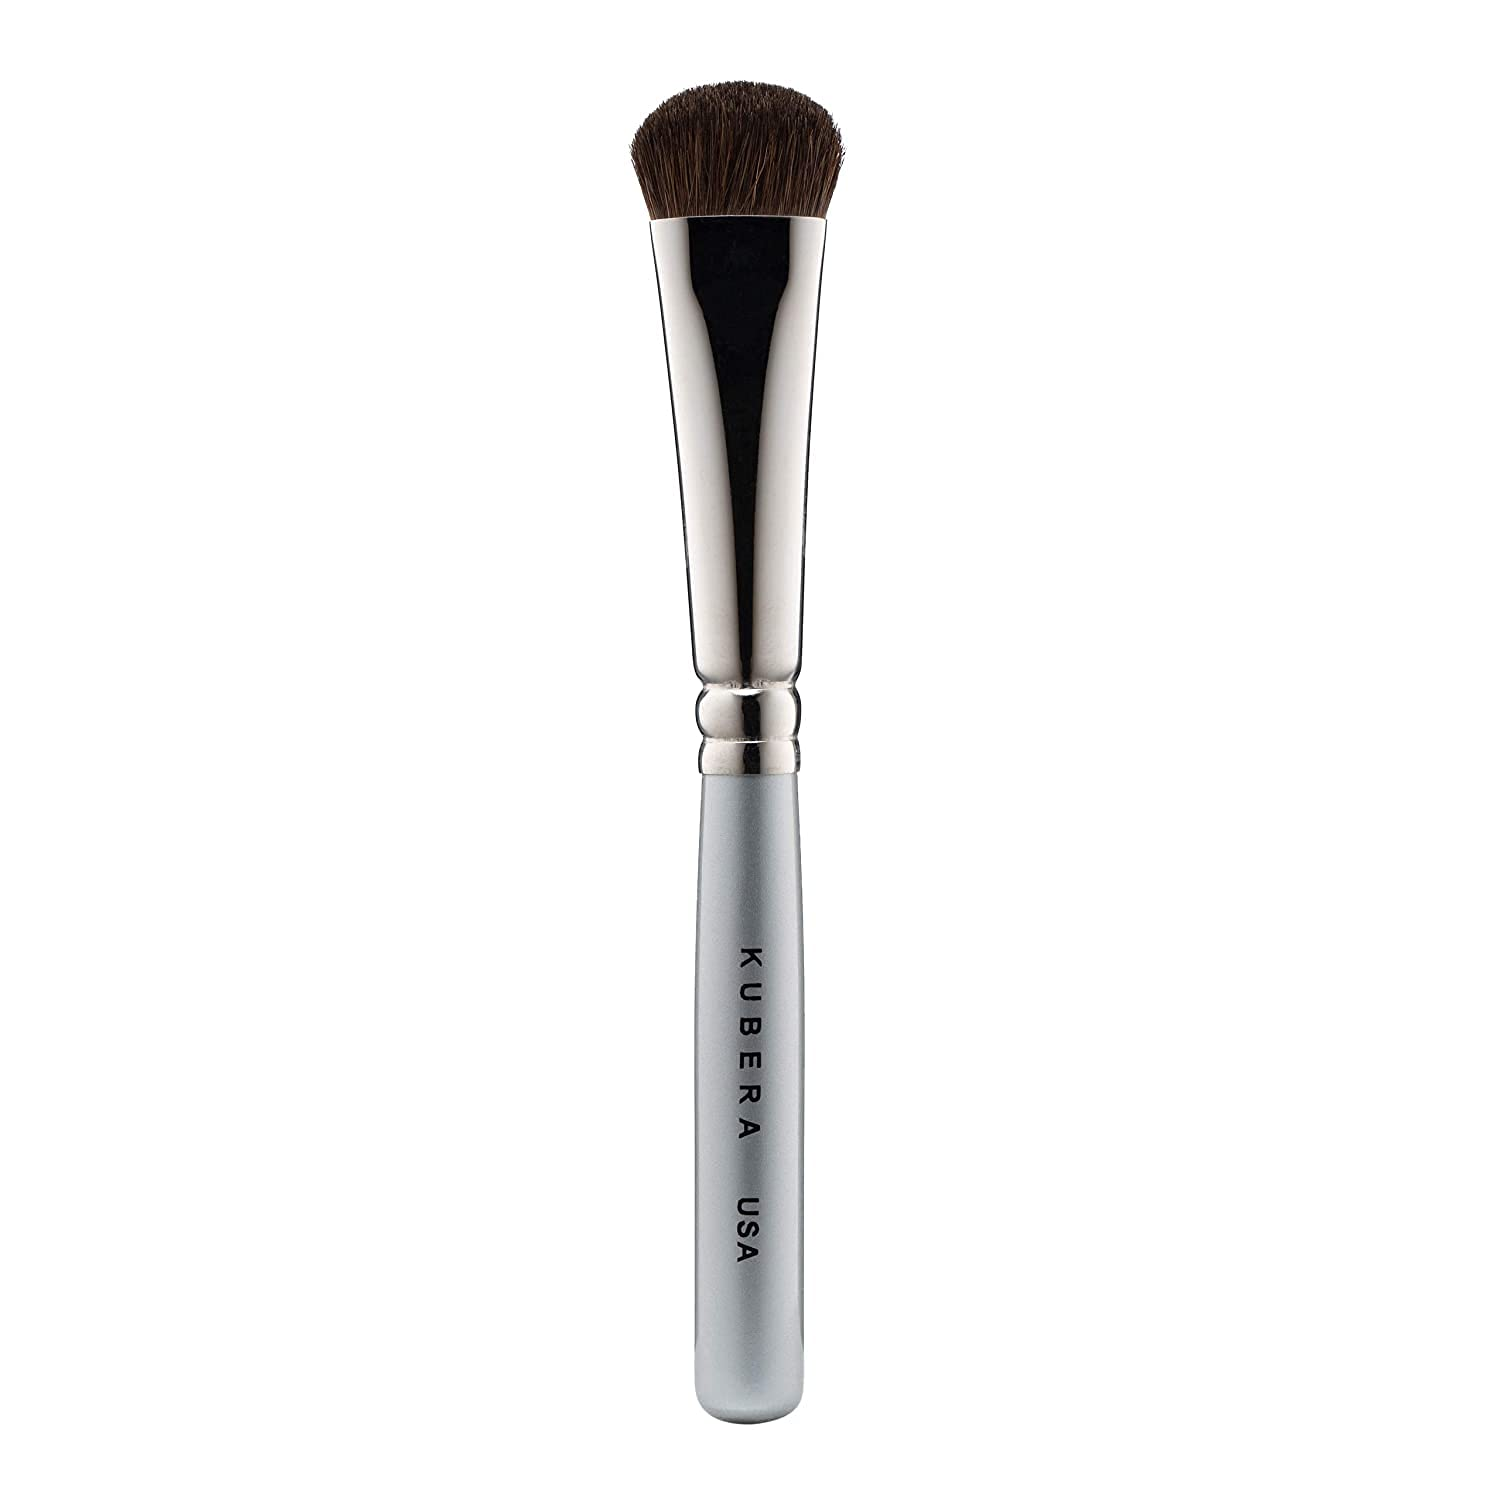 Eye Makeup Max 46% OFF Brush KUBERA Assembled in 100% Natural High quality Hair the USA